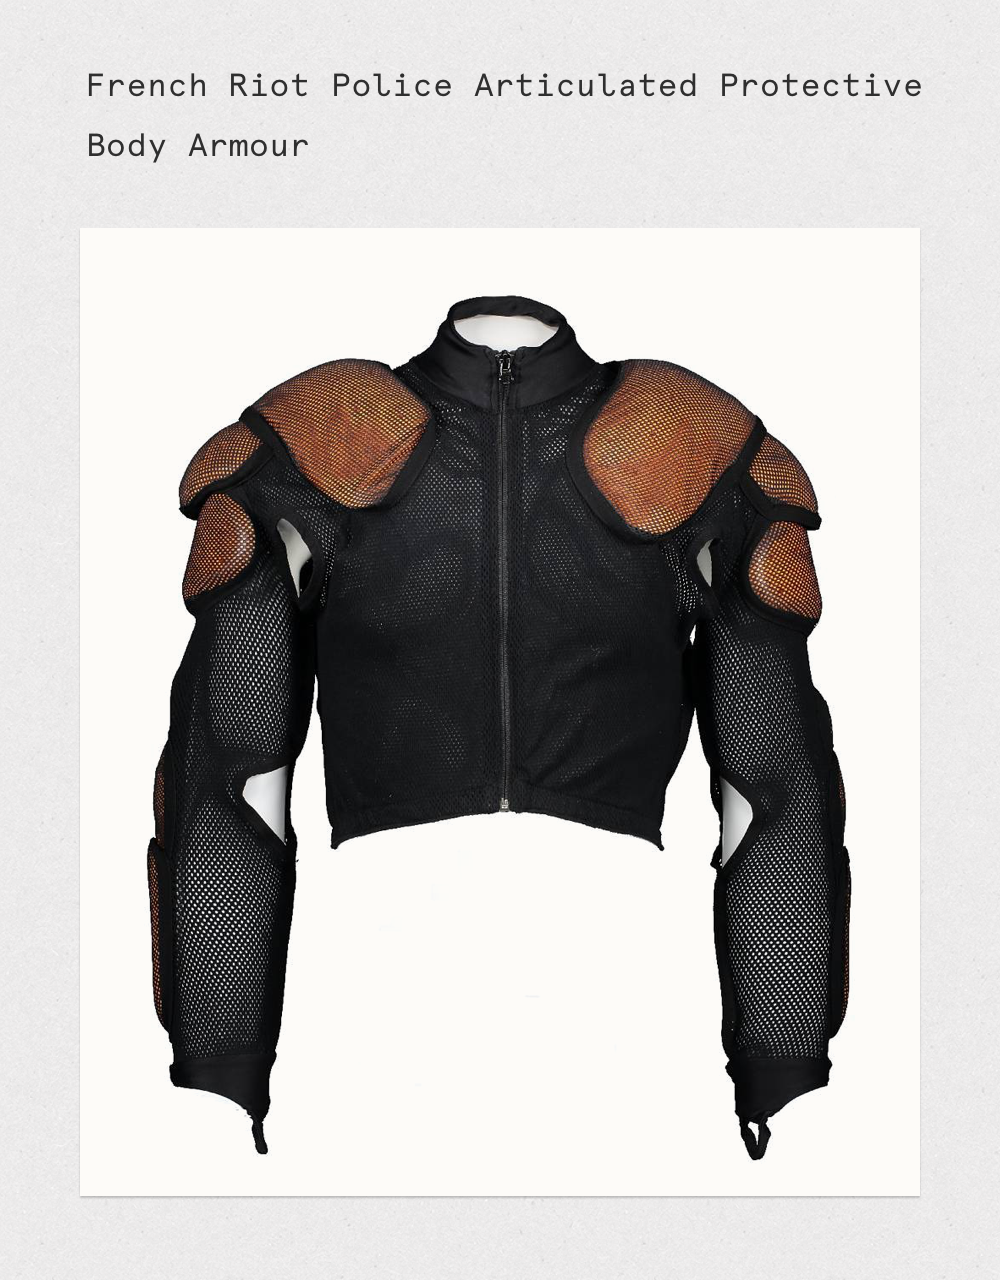 Zip up Airtex mesh top with Lycra neck opening, closure with front zipper. Over the thumb fitting on the sleeves to stop them from riding up. Hard foam padding to up shoulder and lower back arm. Three shaped pads on shoulder, three smaller pads on the elbow and lower arm. Size: Small.